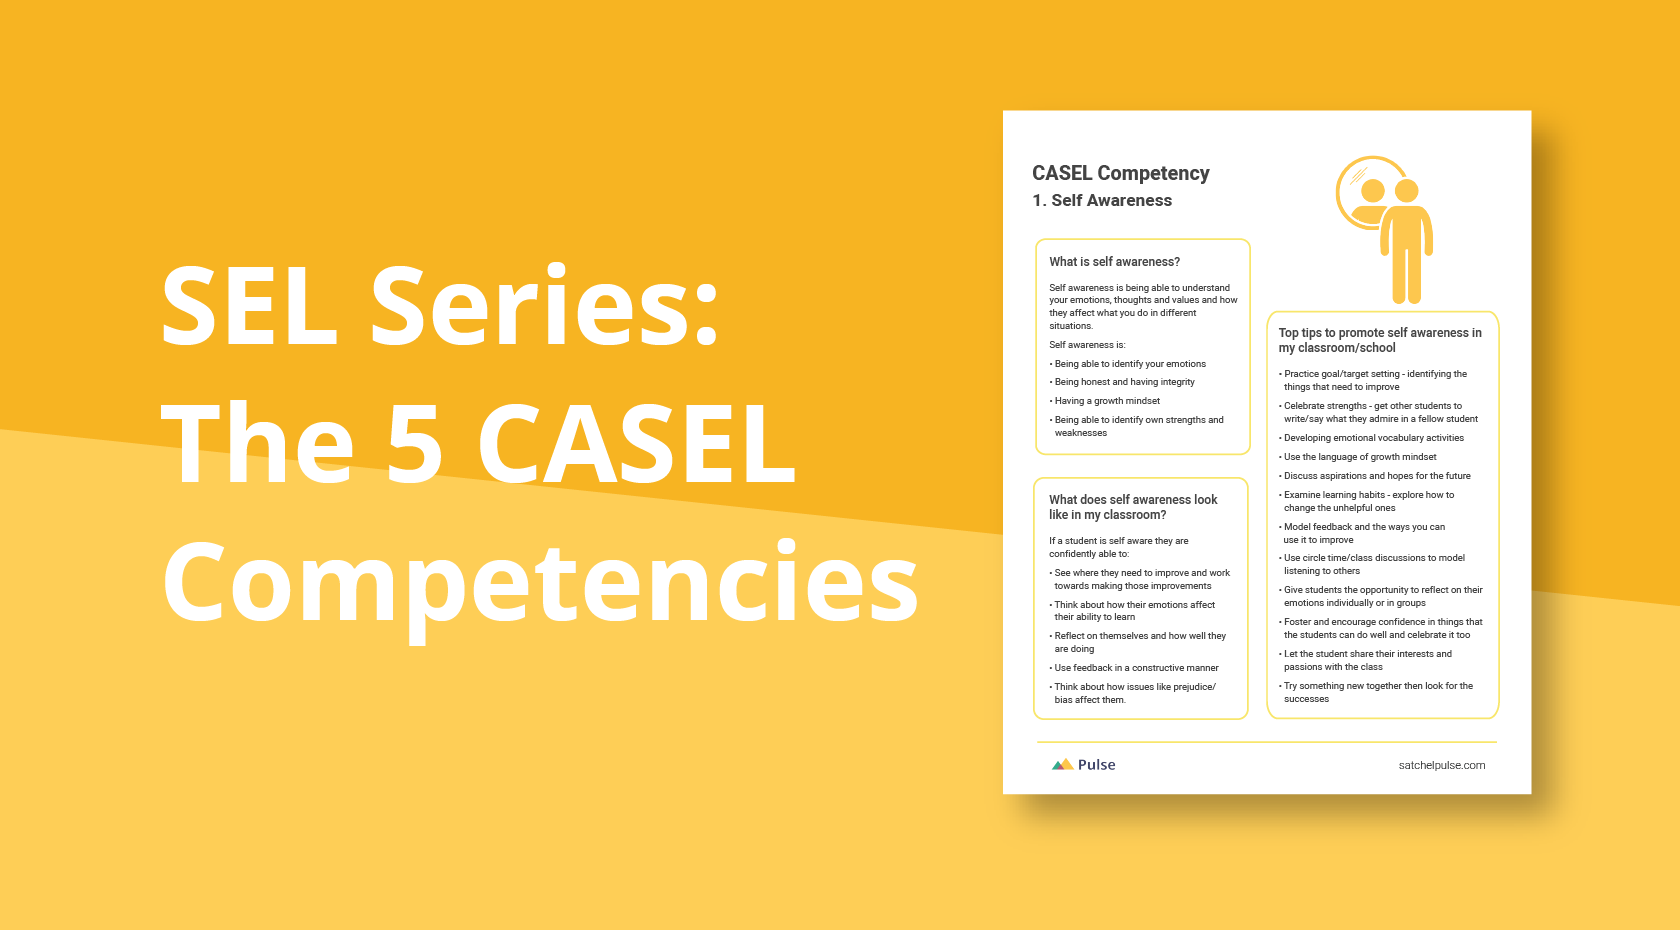 SEL Series - The 5 CASEL Competencies RC-T-1